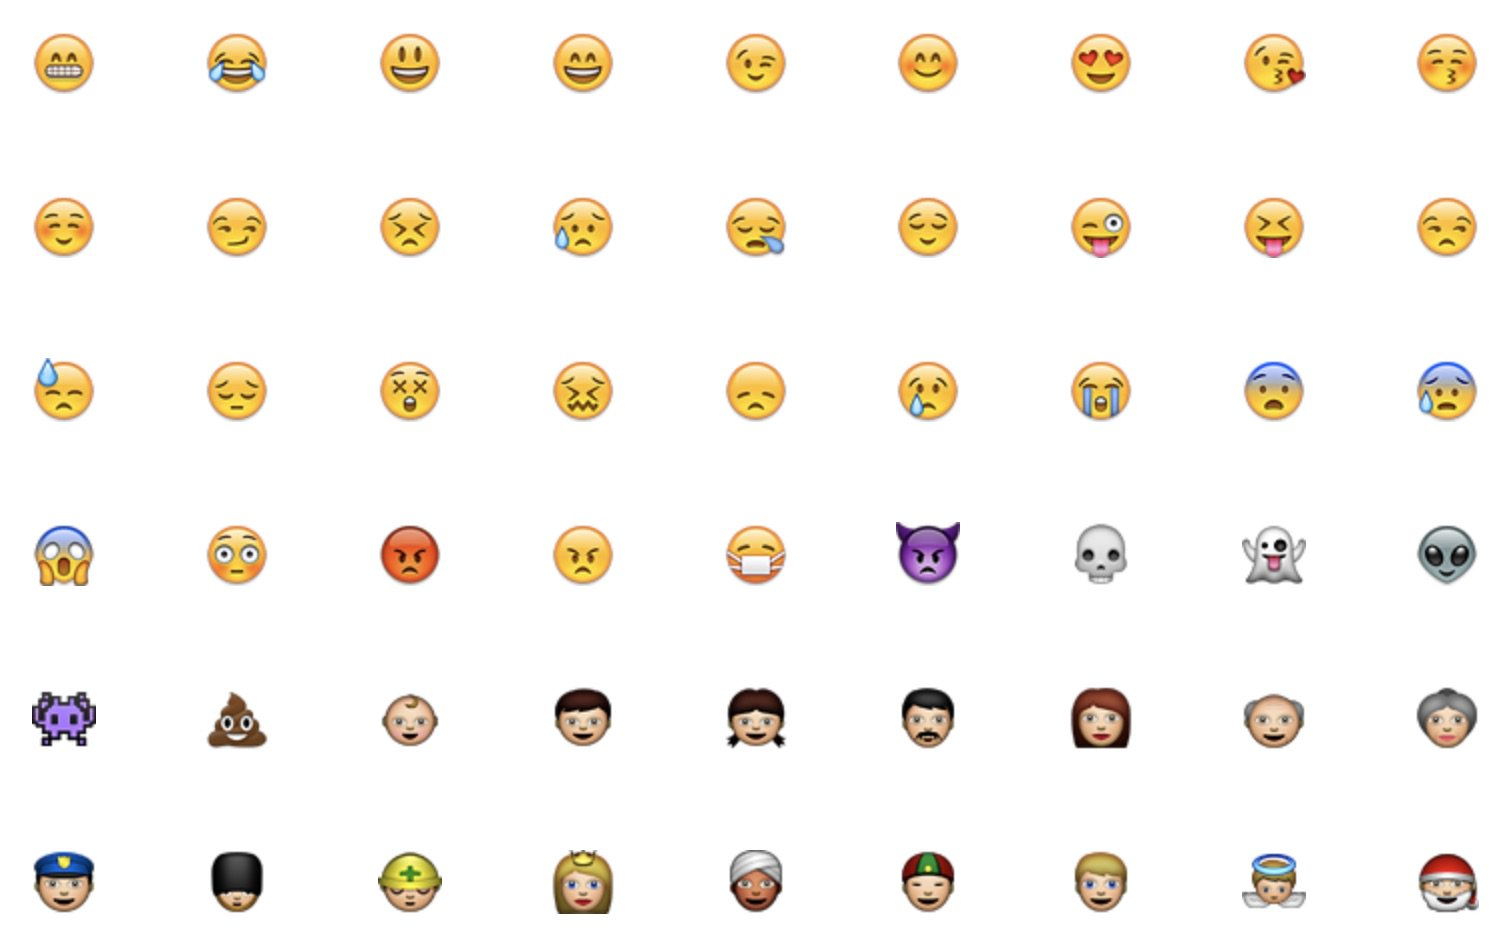 iPhone OS 2.2 emoji